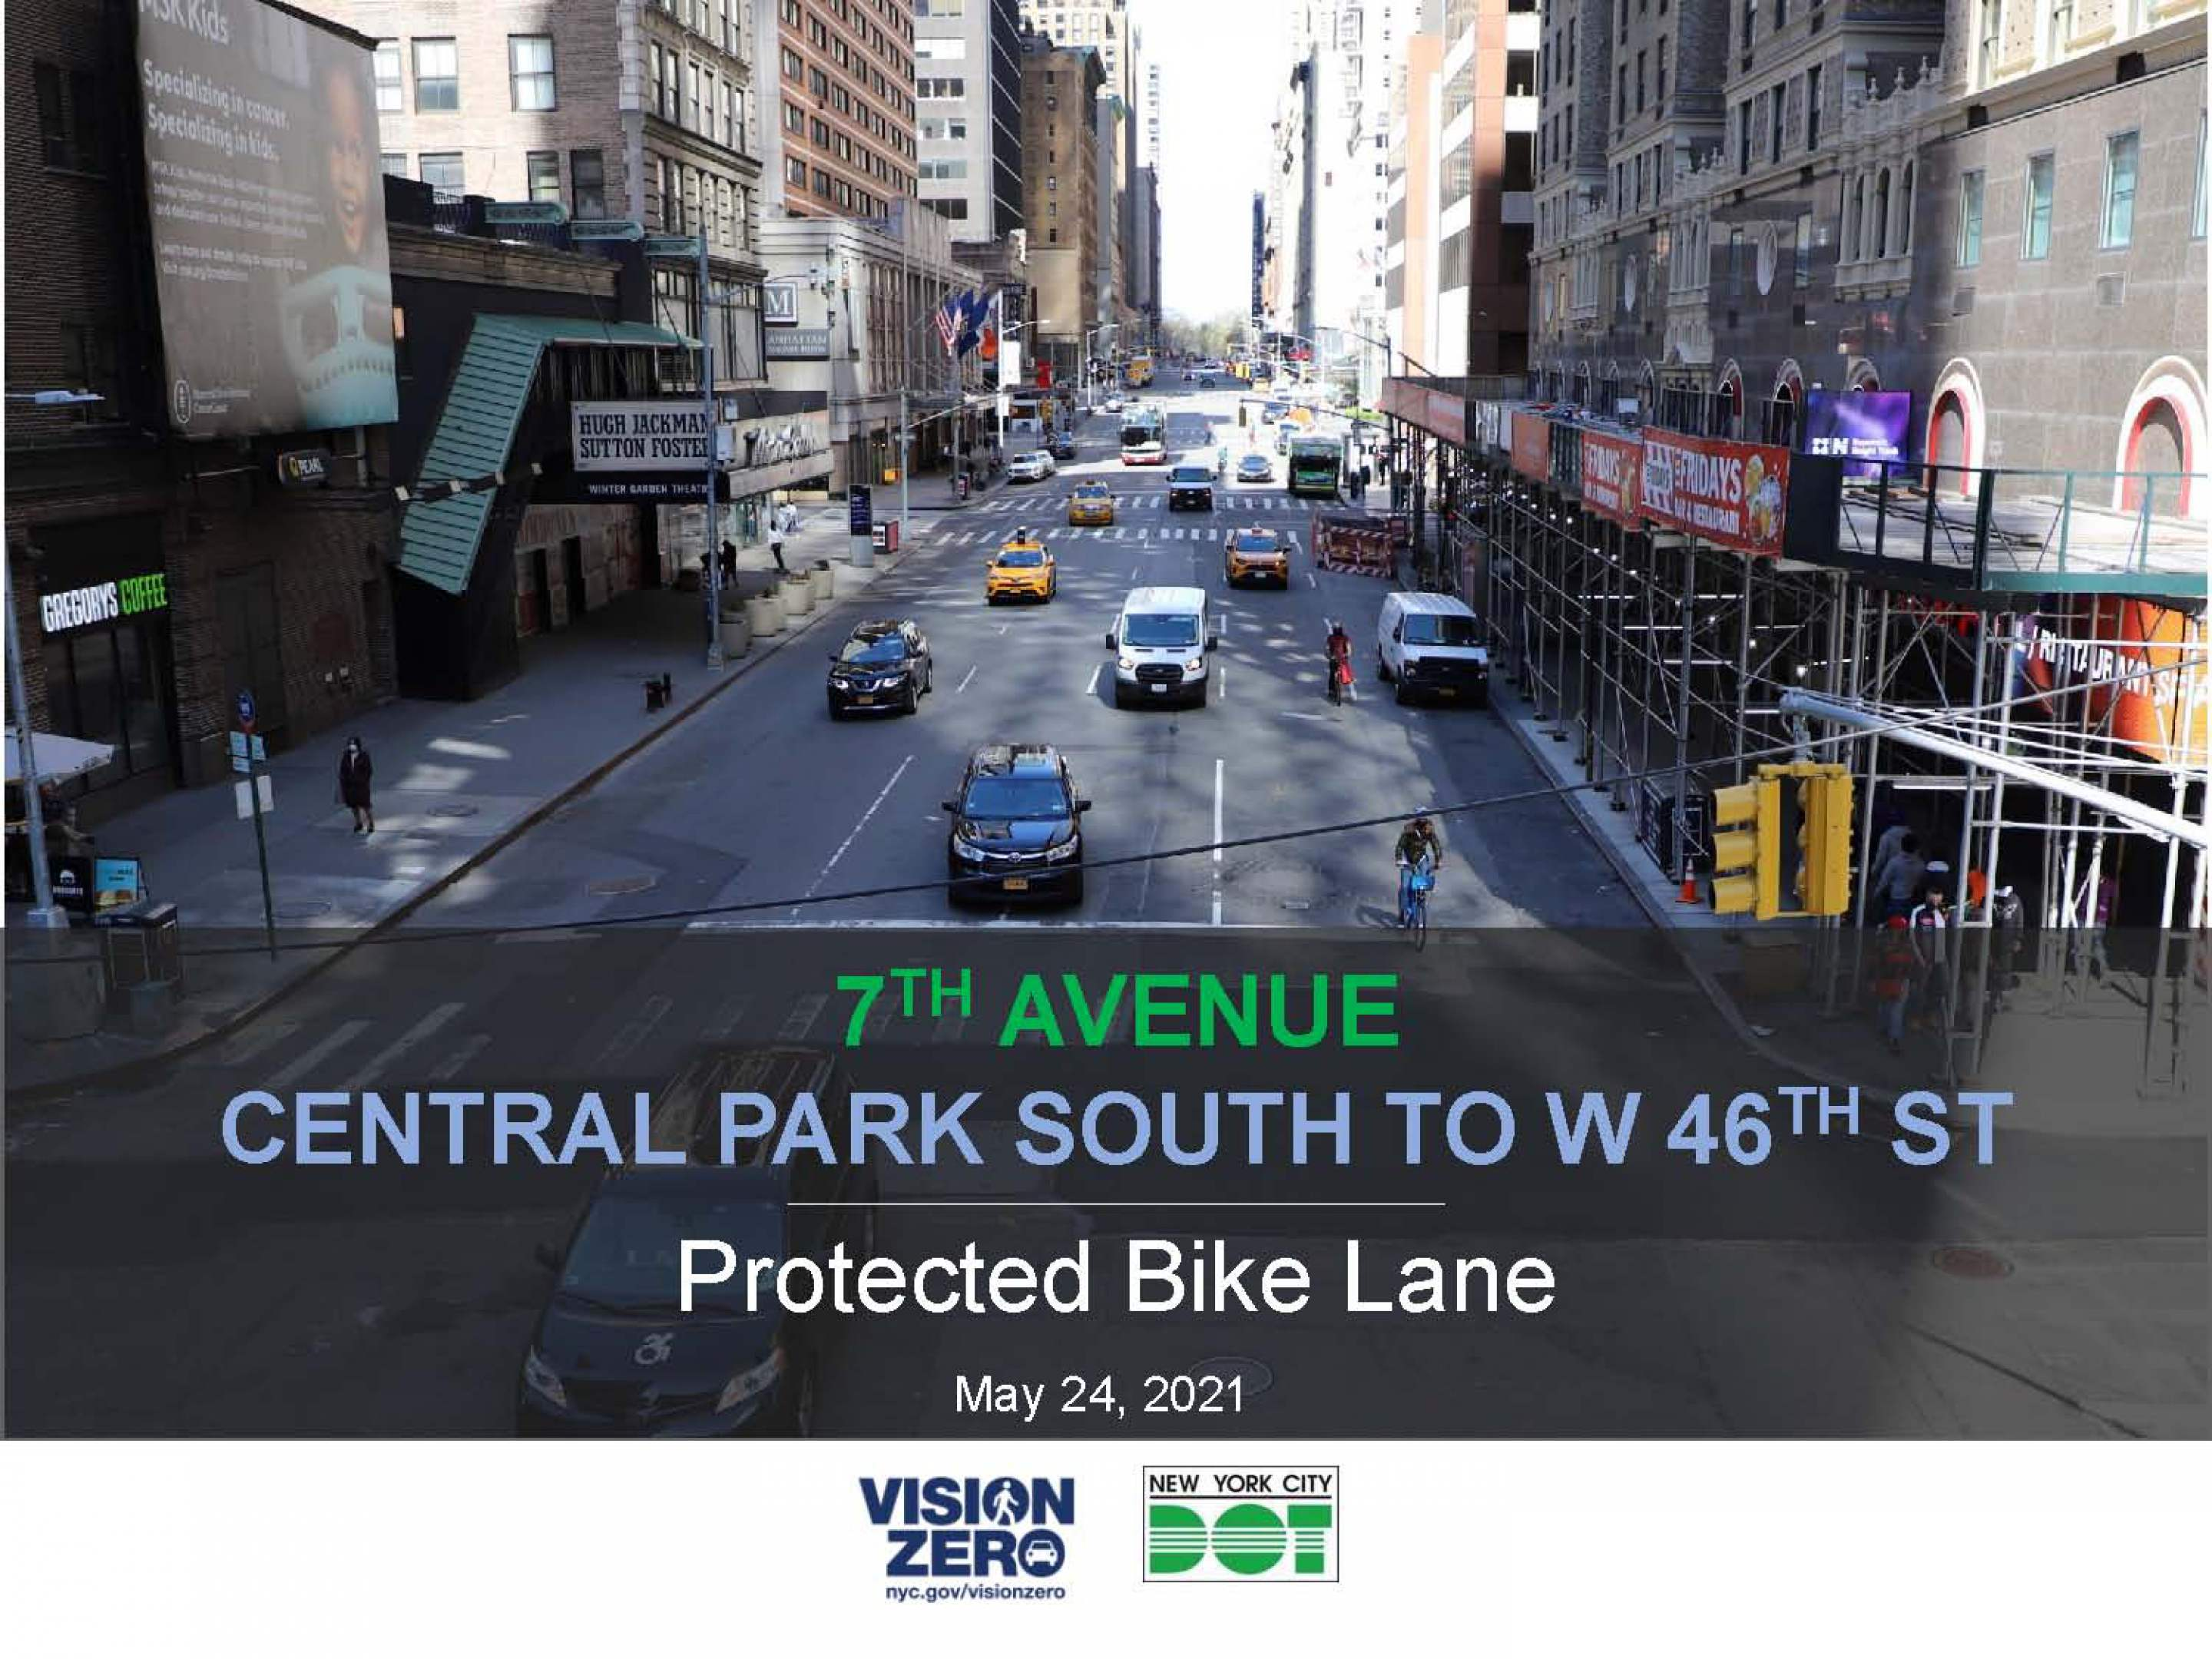 Banner Photo: 7th Avenue Protected Bike Lane (Central Park to Times Square)